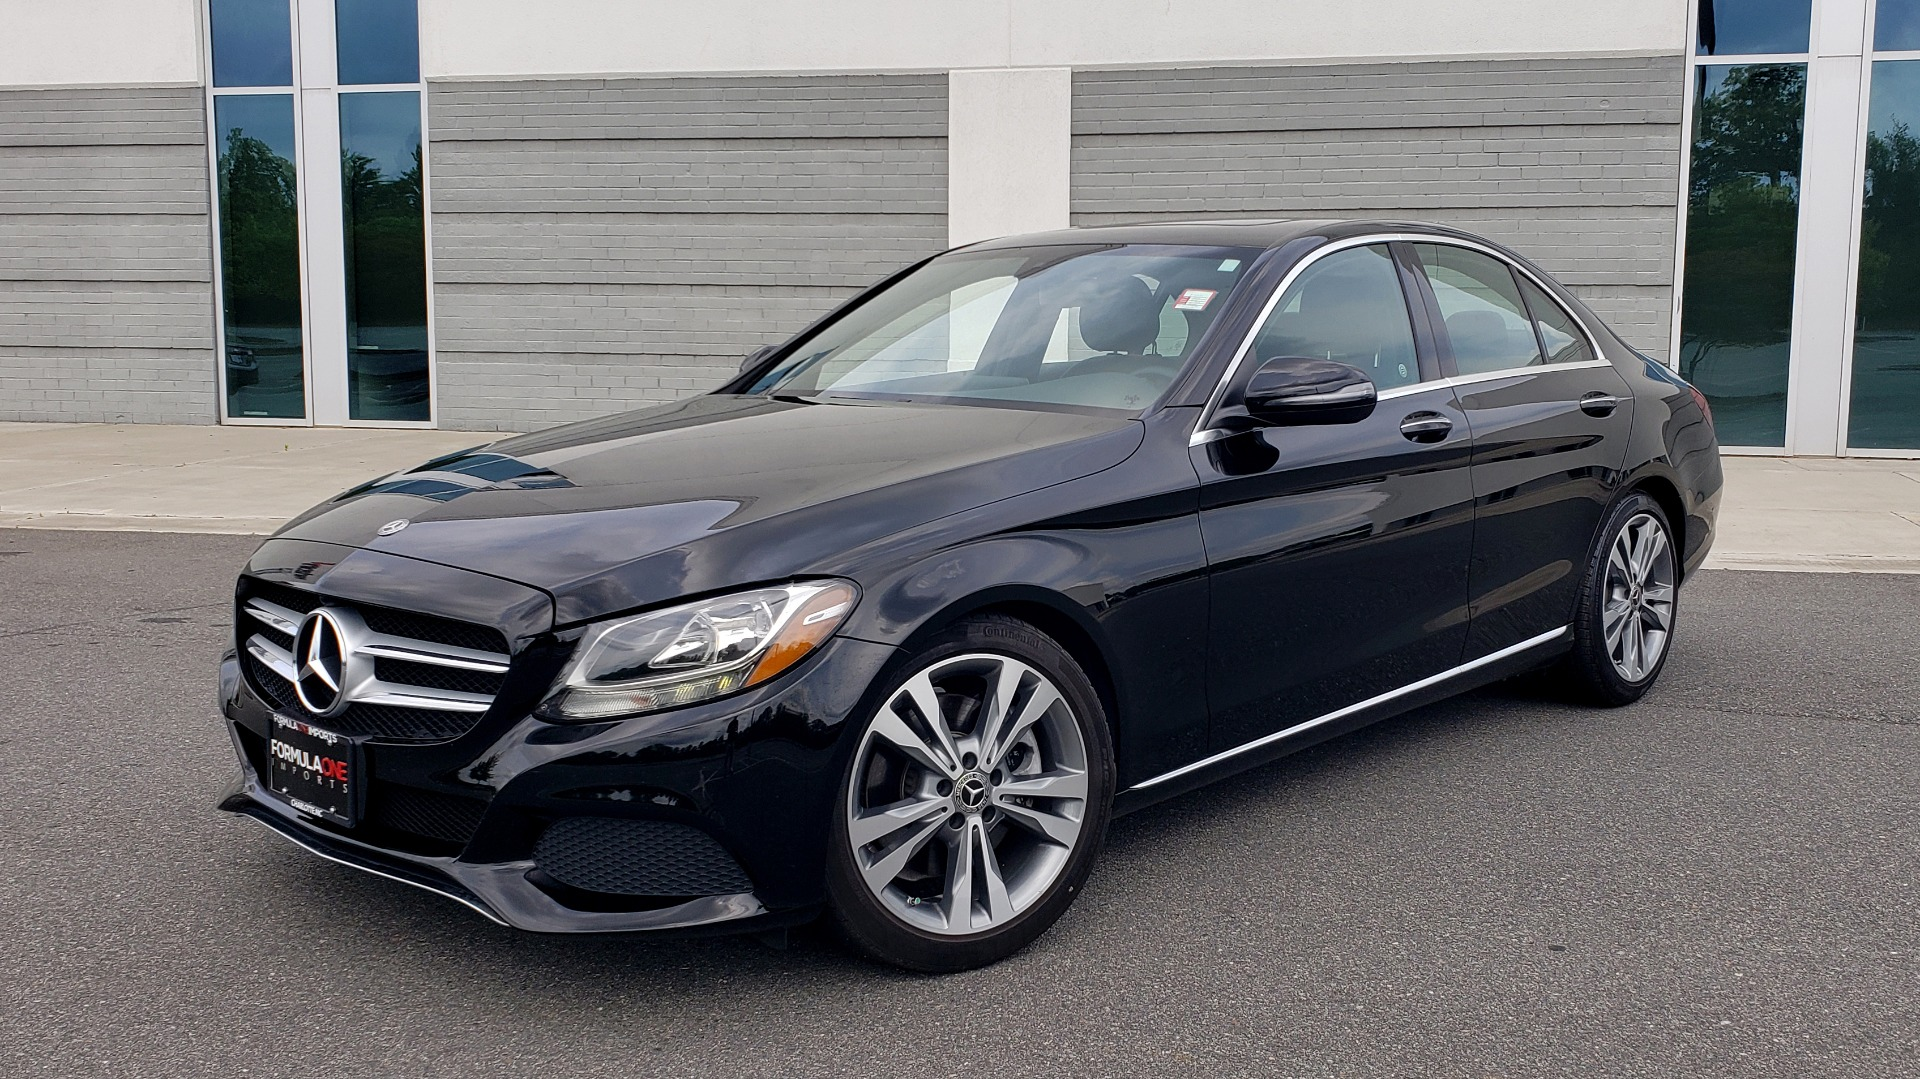 Used 2018 Mercedes-Benz C-CLASS C 300 PREMIUM / HTD STS / APPLE CARPLAY / 18IN WHEELS / REARVIEW for sale $24,795 at Formula Imports in Charlotte NC 28227 1